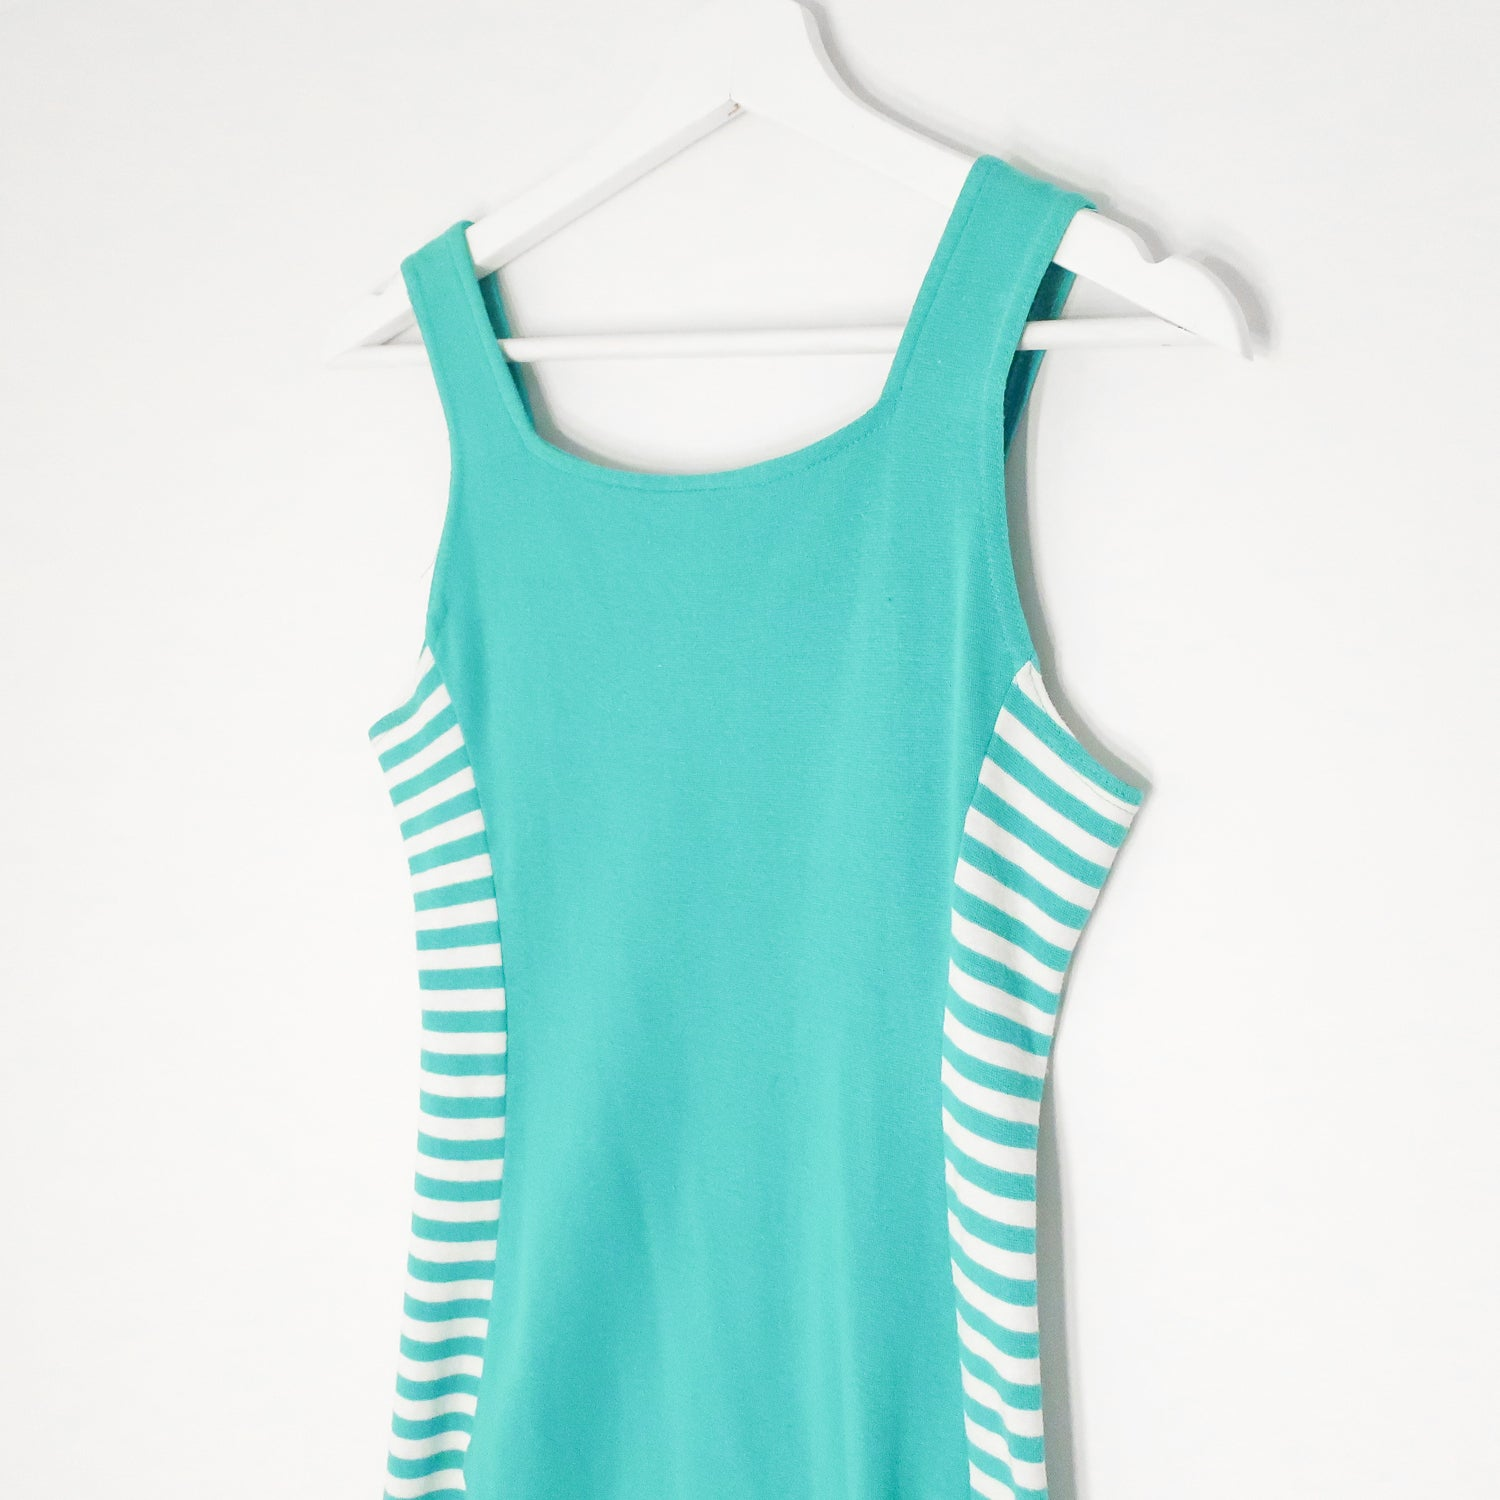 Second Room Vintage Clothing. Vintage bright turquoise blue 80s/90s Mariposa body con mini tank dress, with white and blue stripes up the sides, and a subtle sweetheart style neckline. Free North American shipping on all orders.